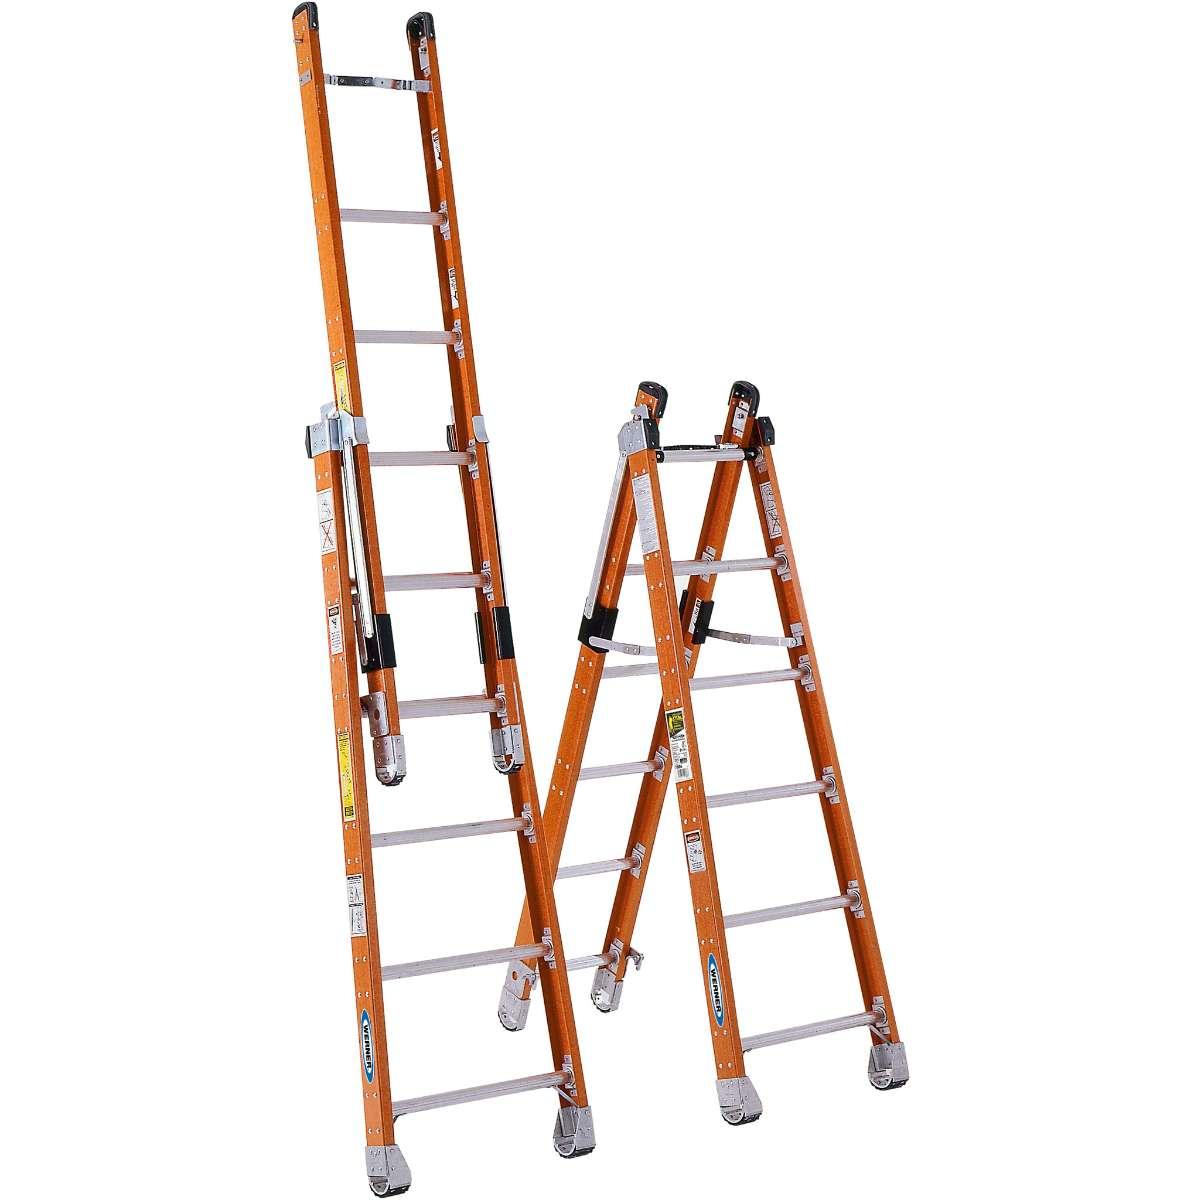 Fiberglass Multi Purpose Ladder - 375 lb. Capacity (7800 Series)